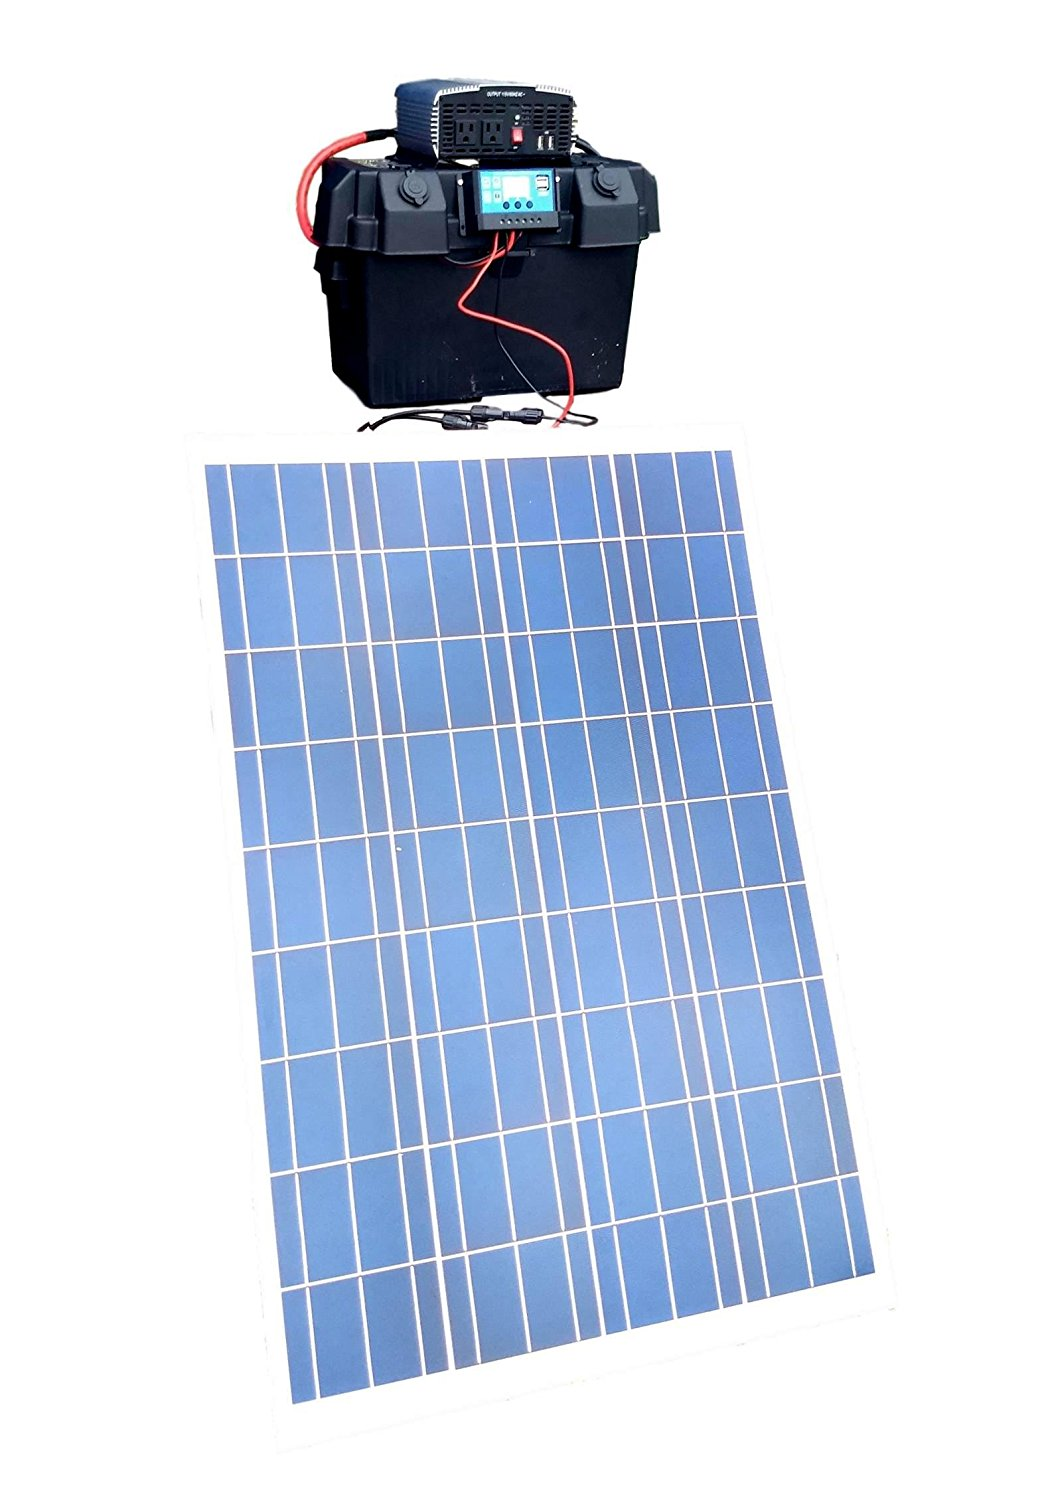 Cheap 12vdc Battery Find Deals On Line At Alibabacom 12v 24v 15amp Manual Pwm Solar Charger Controller Circuit Get Quotations Cutting Edge Power 24vdc 30a Smart And Portable Box With Usb Charge